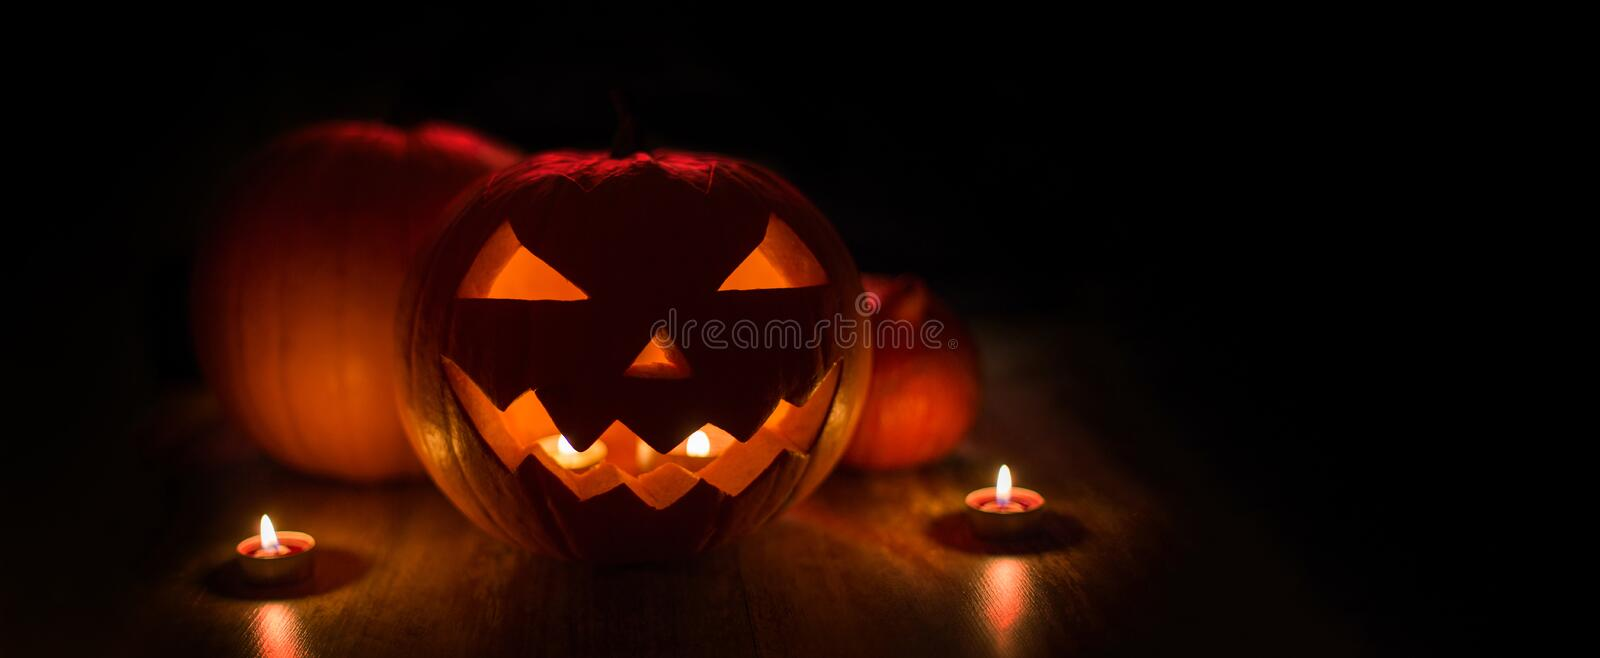 Halloween jack-o-lantern burning in darkness. Halloween and holidays concept - spooky carved pumpkin jack-o-lantern with candles in darkness royalty free stock photo